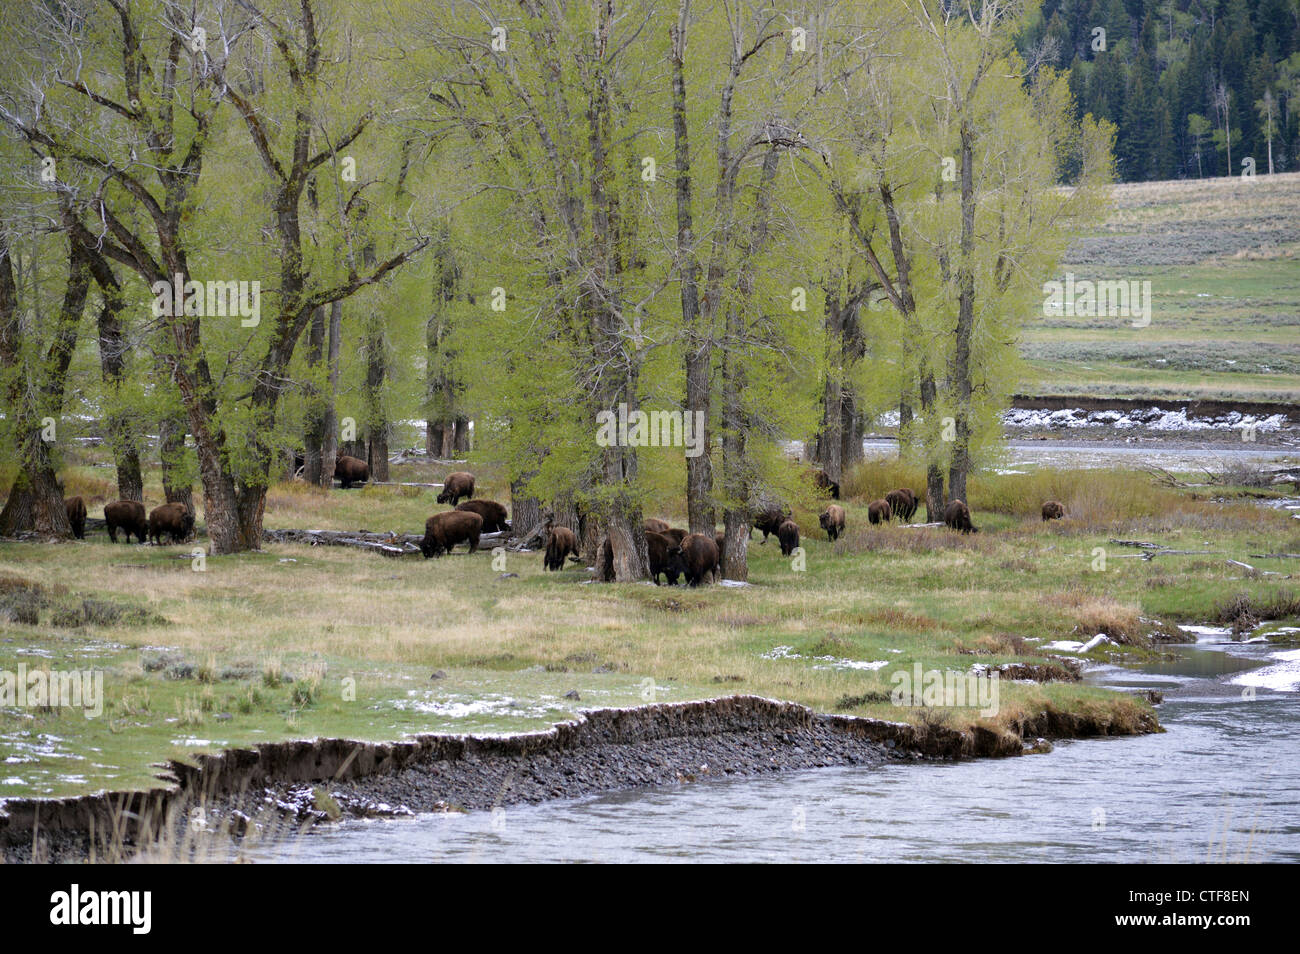 A herd of buffalo in Yellowstone National Park near the East Entrance - Stock Image